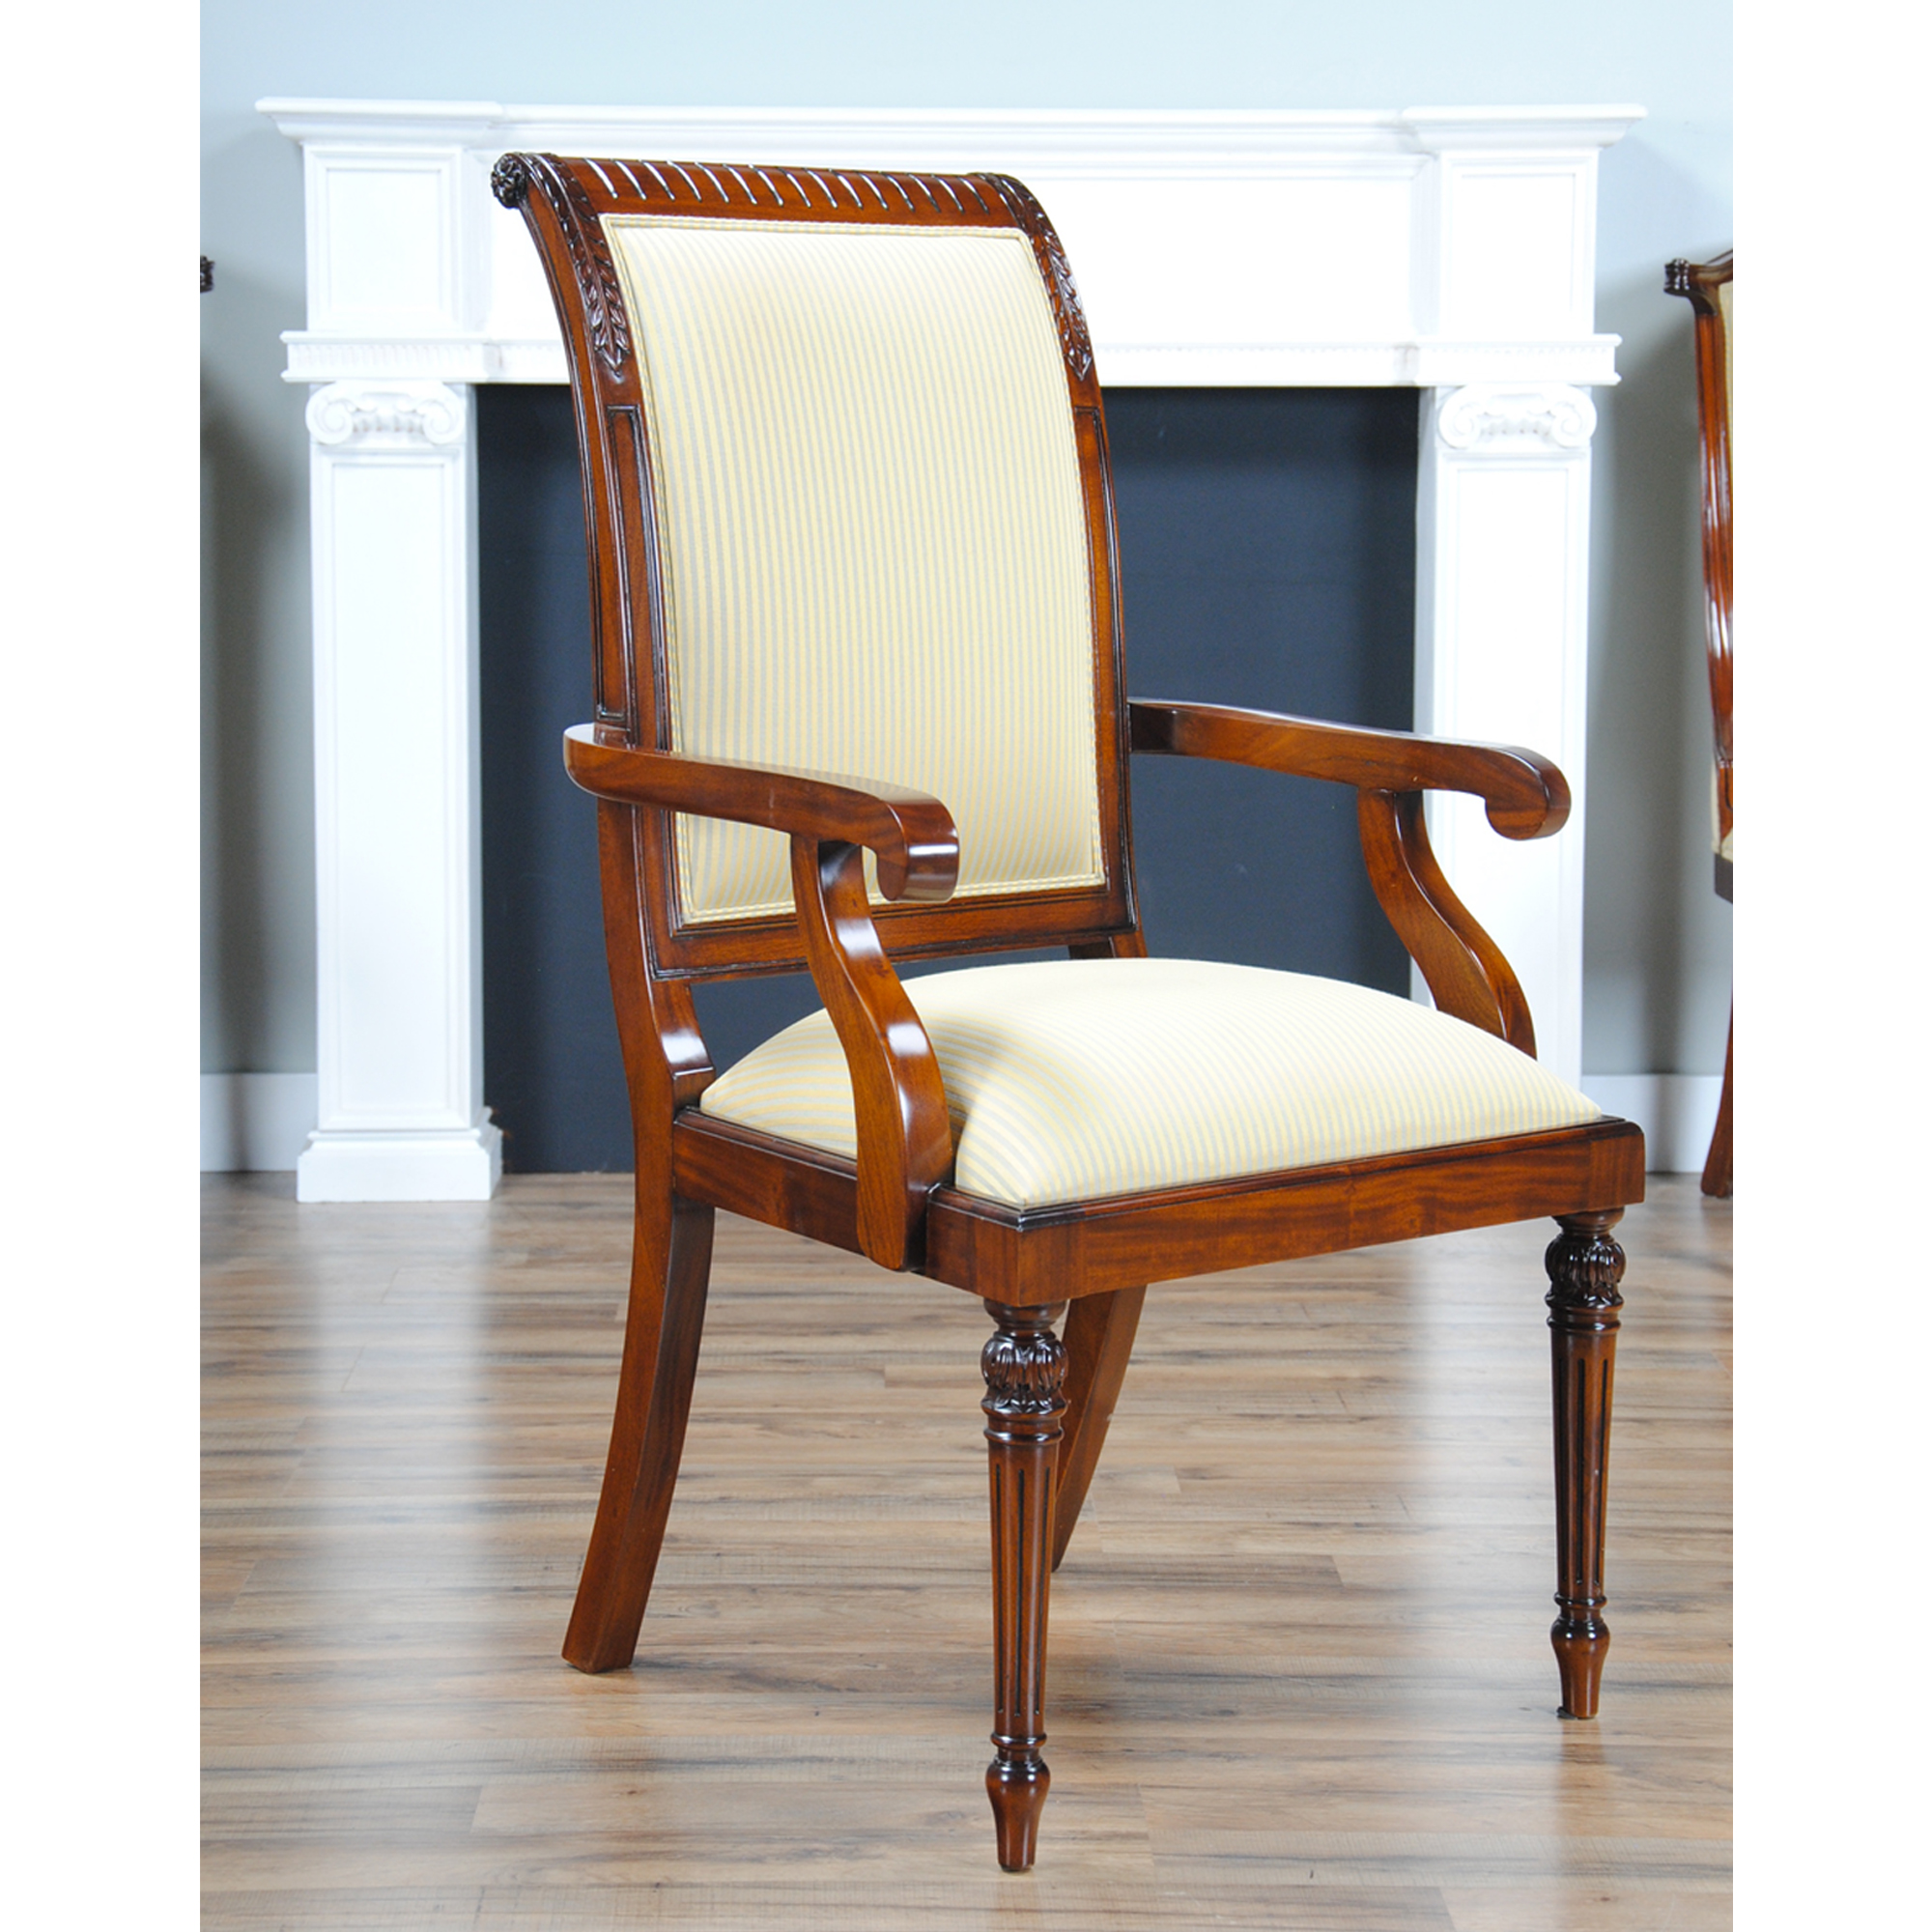 Tall Back Upholstered Arm Chair, Niagara Furniture, Free Shipping